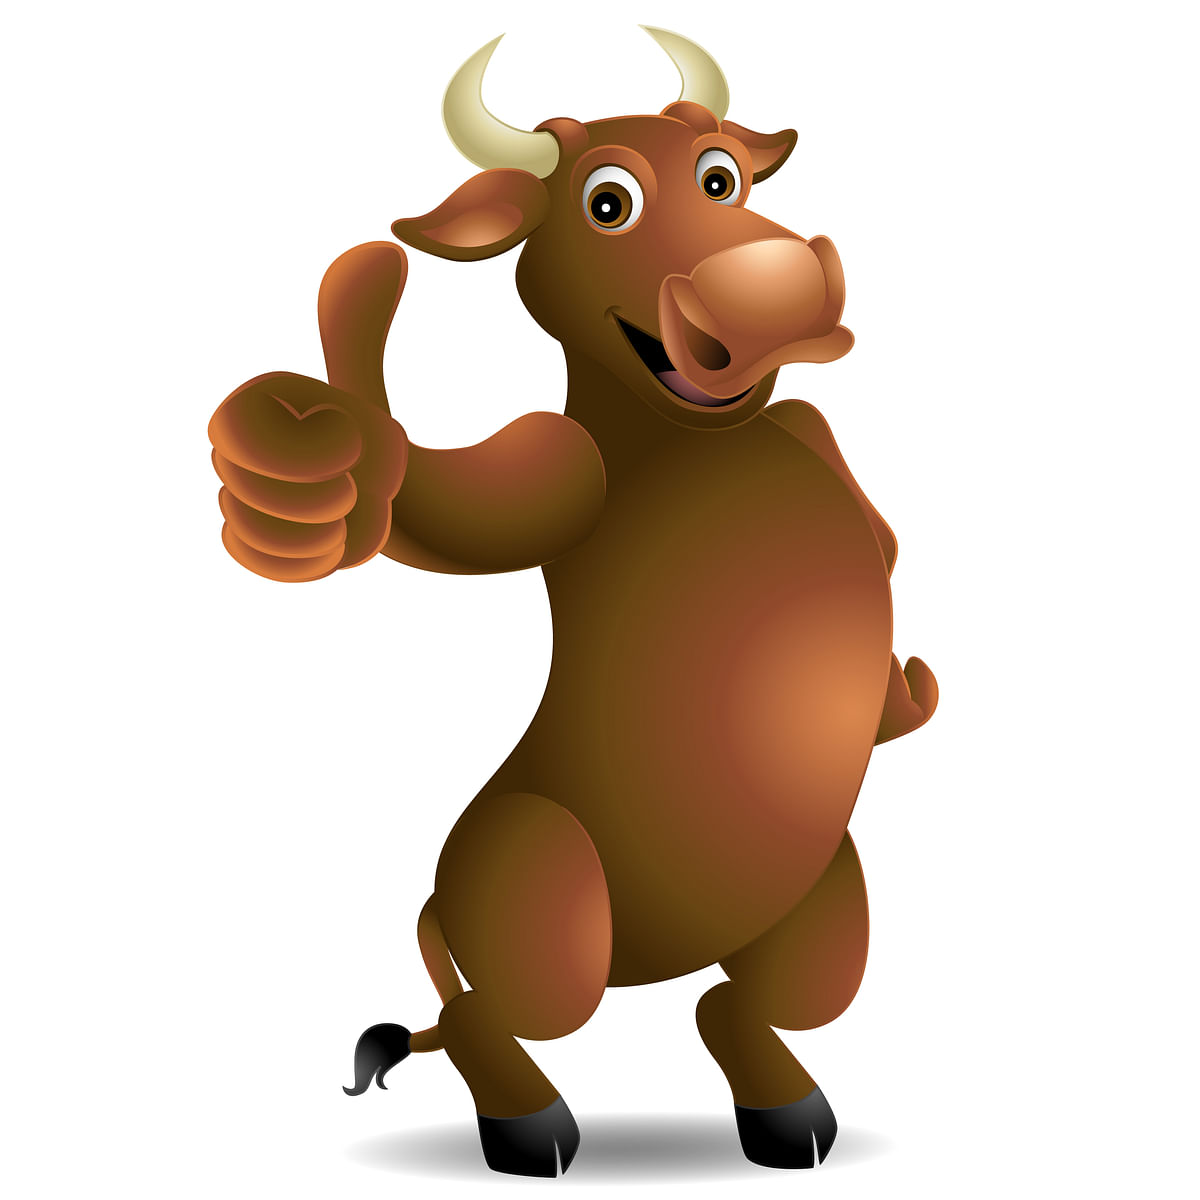 """Anna's logic for eating beef was: """"The beef is not from Indian cows, so its fine!"""" (Photo: iStock)"""